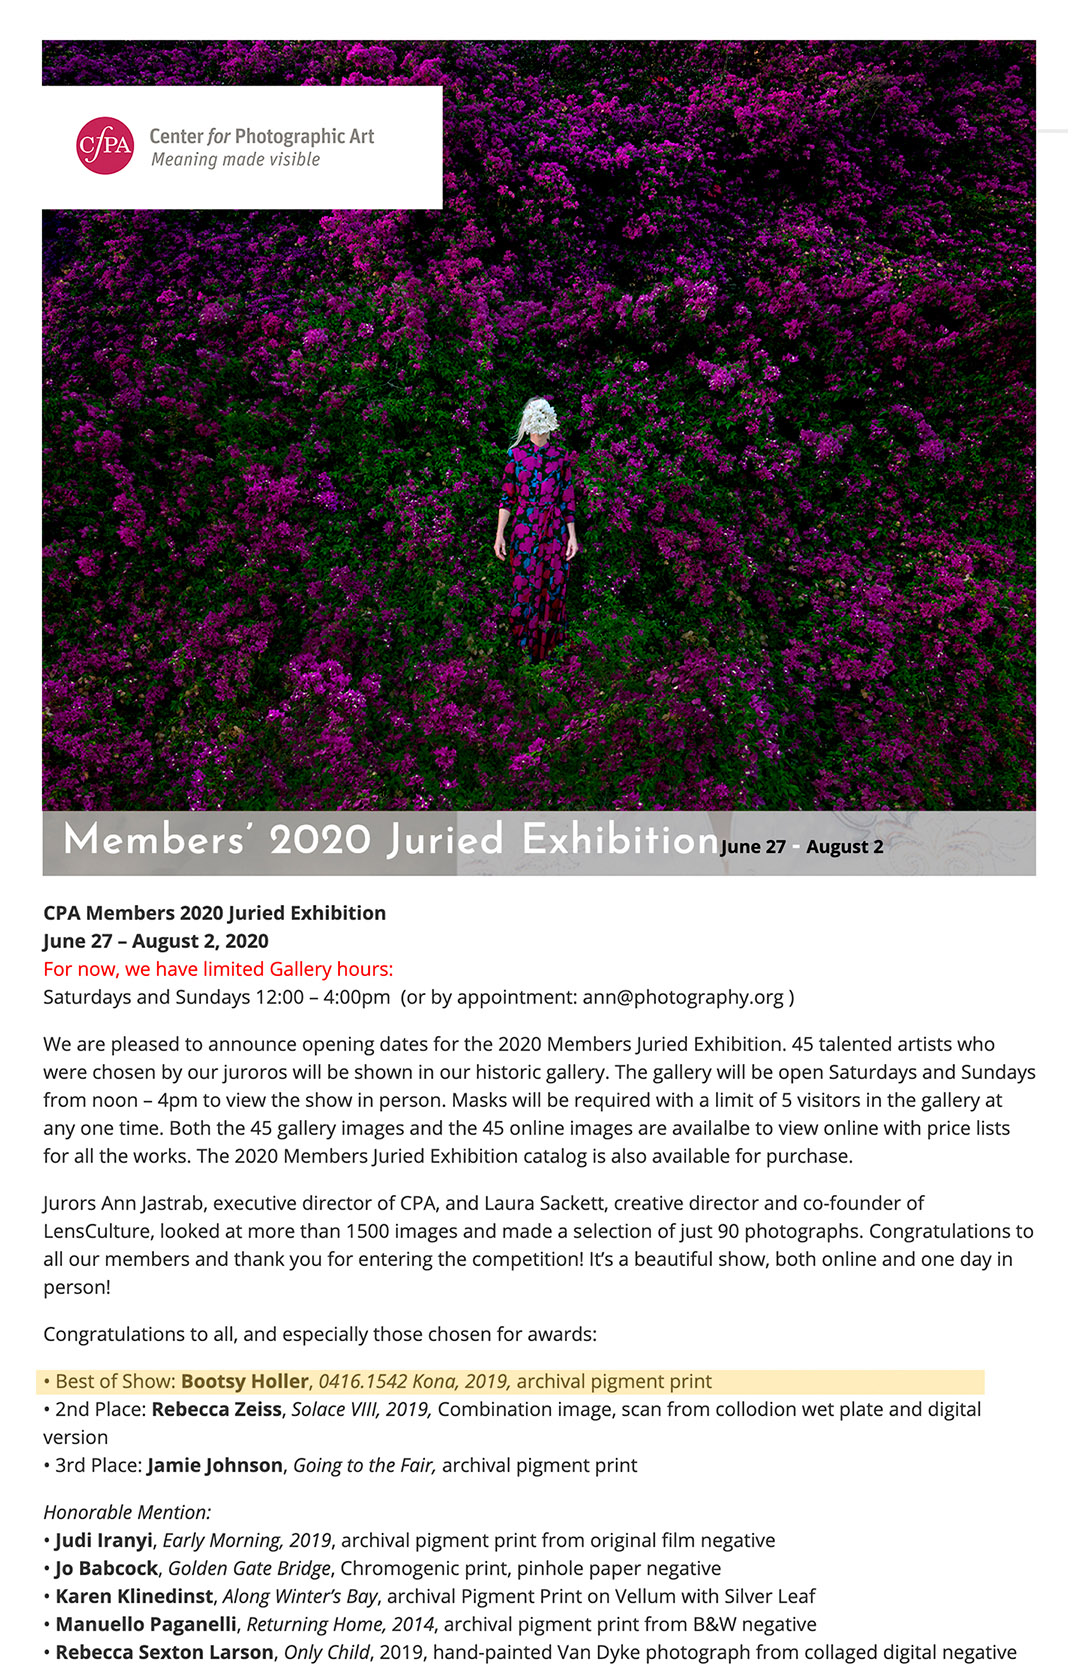 Center for Photographic Art BEST OF SHOW 2020 juried members show